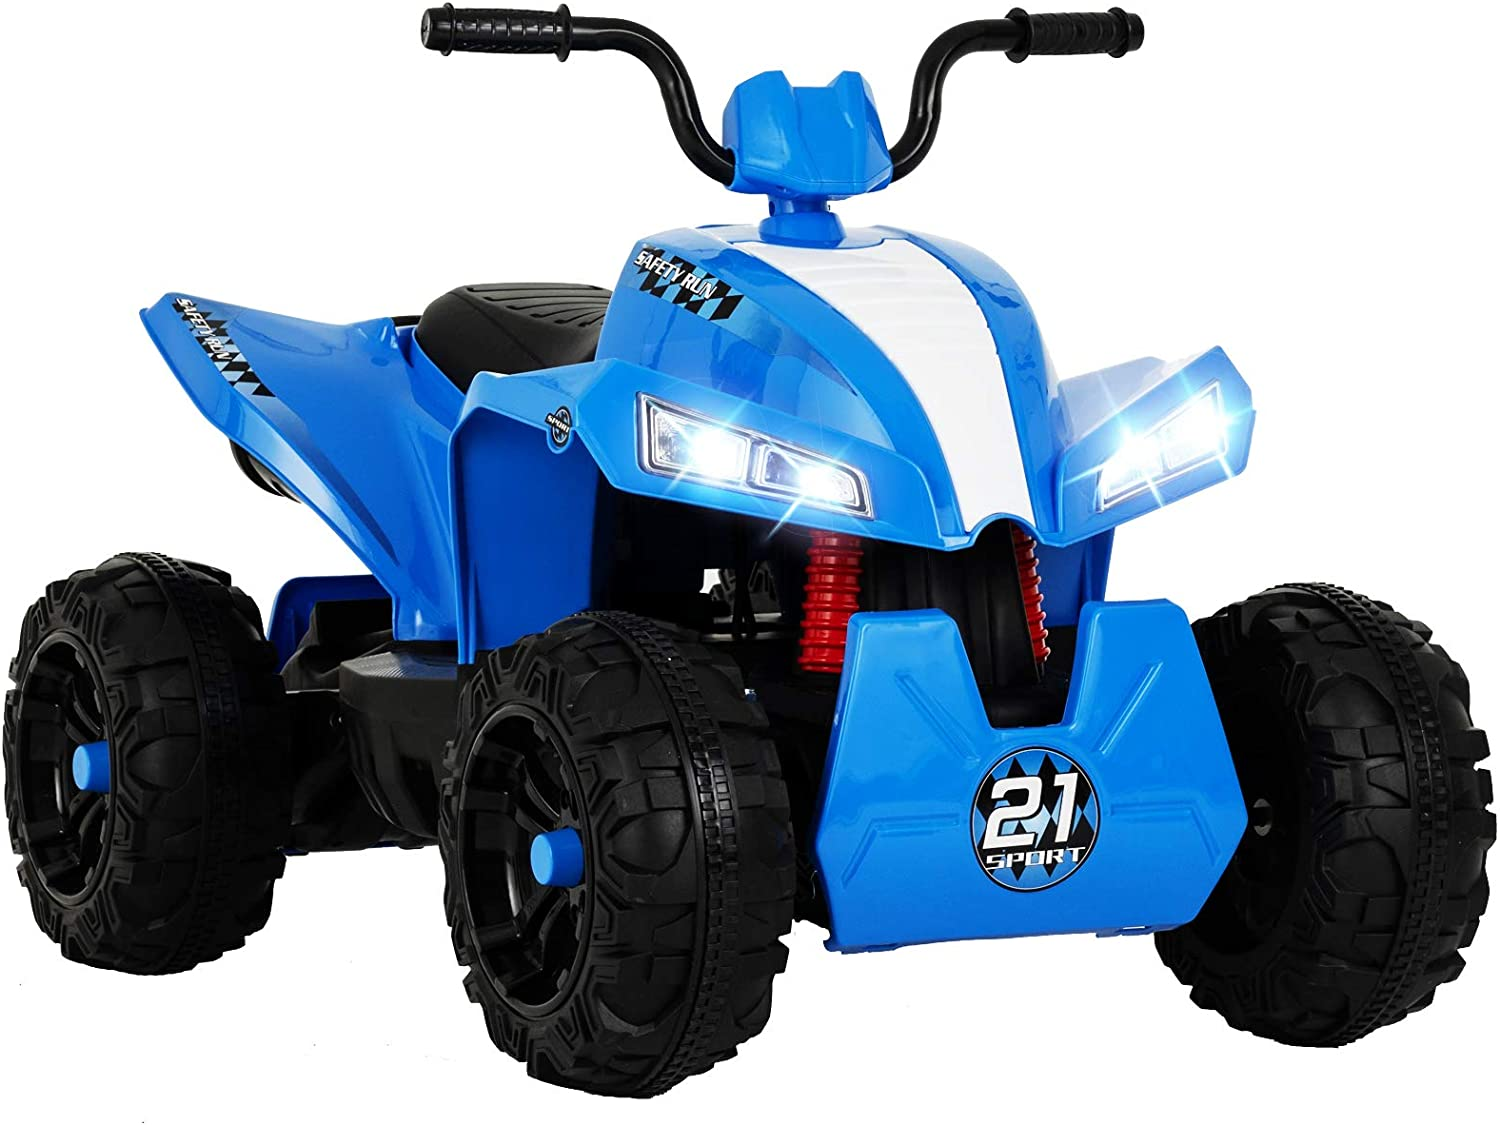 Uenjoy 12V Kids ATV 4 Wheeler Ride On Quad Battery Powered Electric ATV for Kids